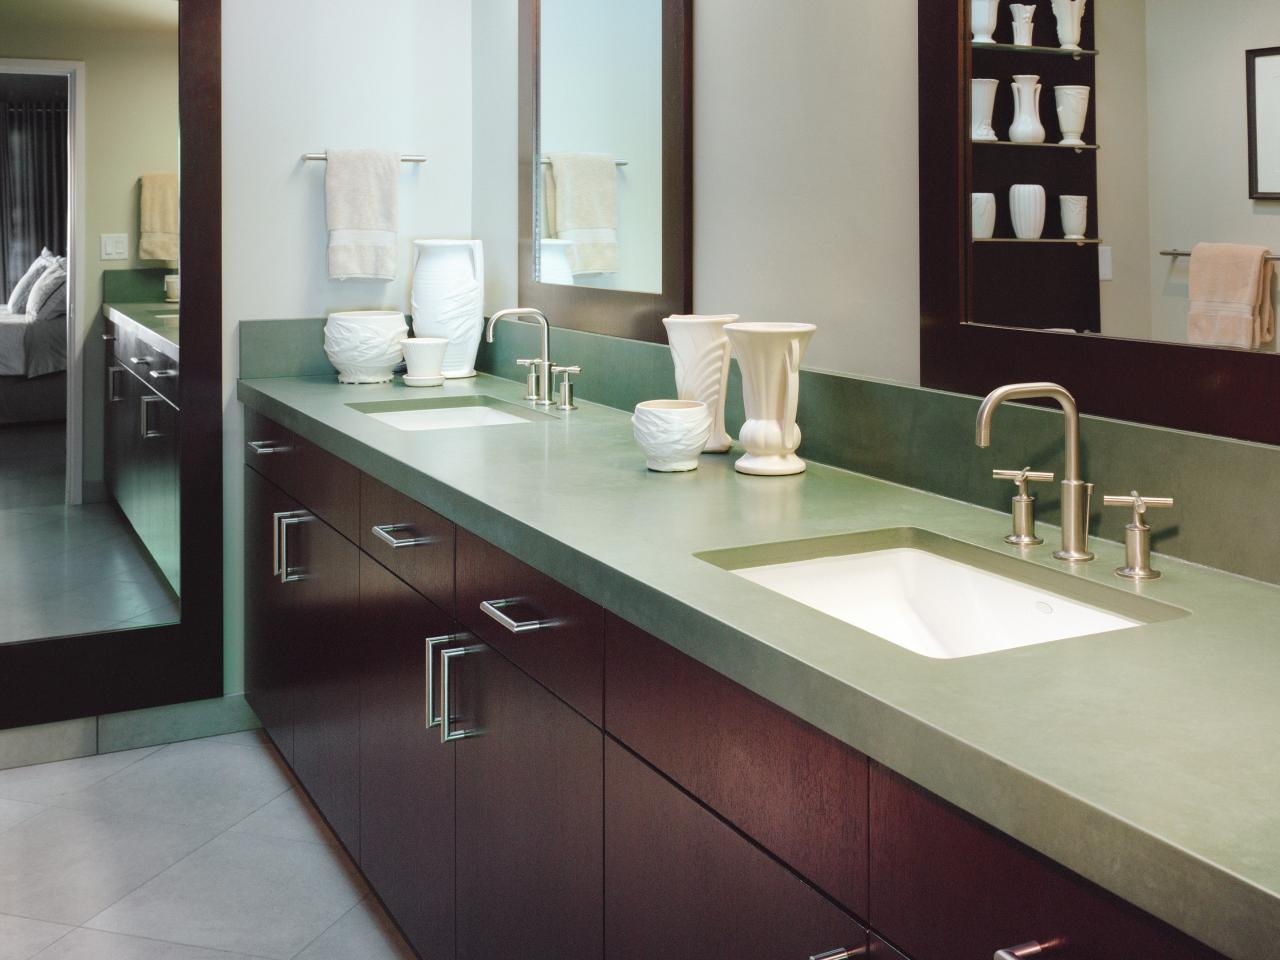 Captivating Costs For Soapstone Bathroom Countertops